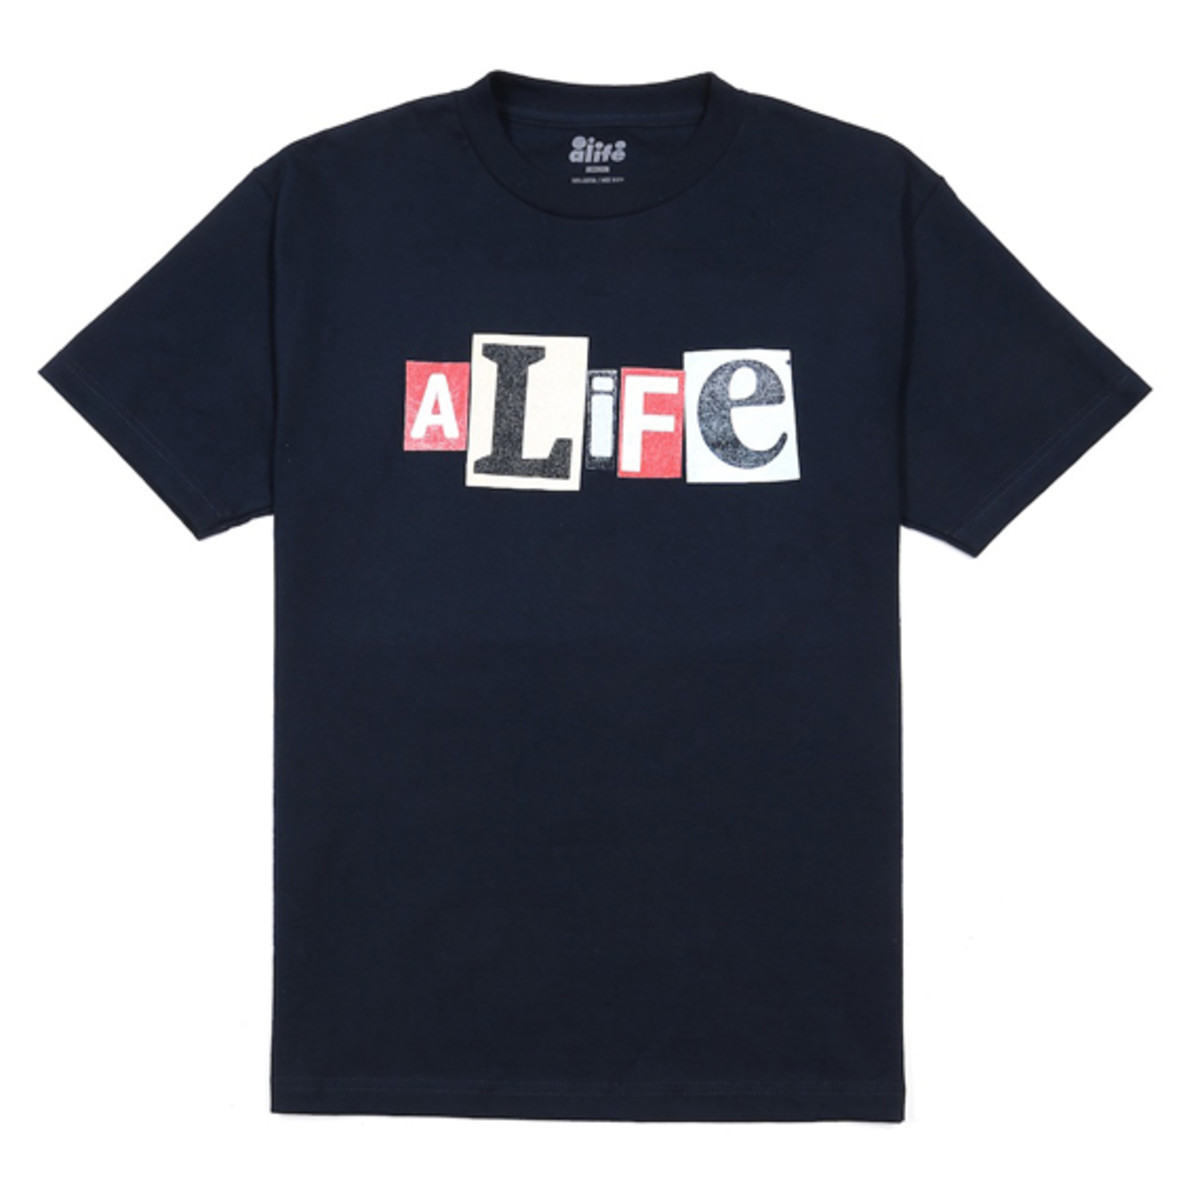 alife-tshirts-october-2013-releases-06